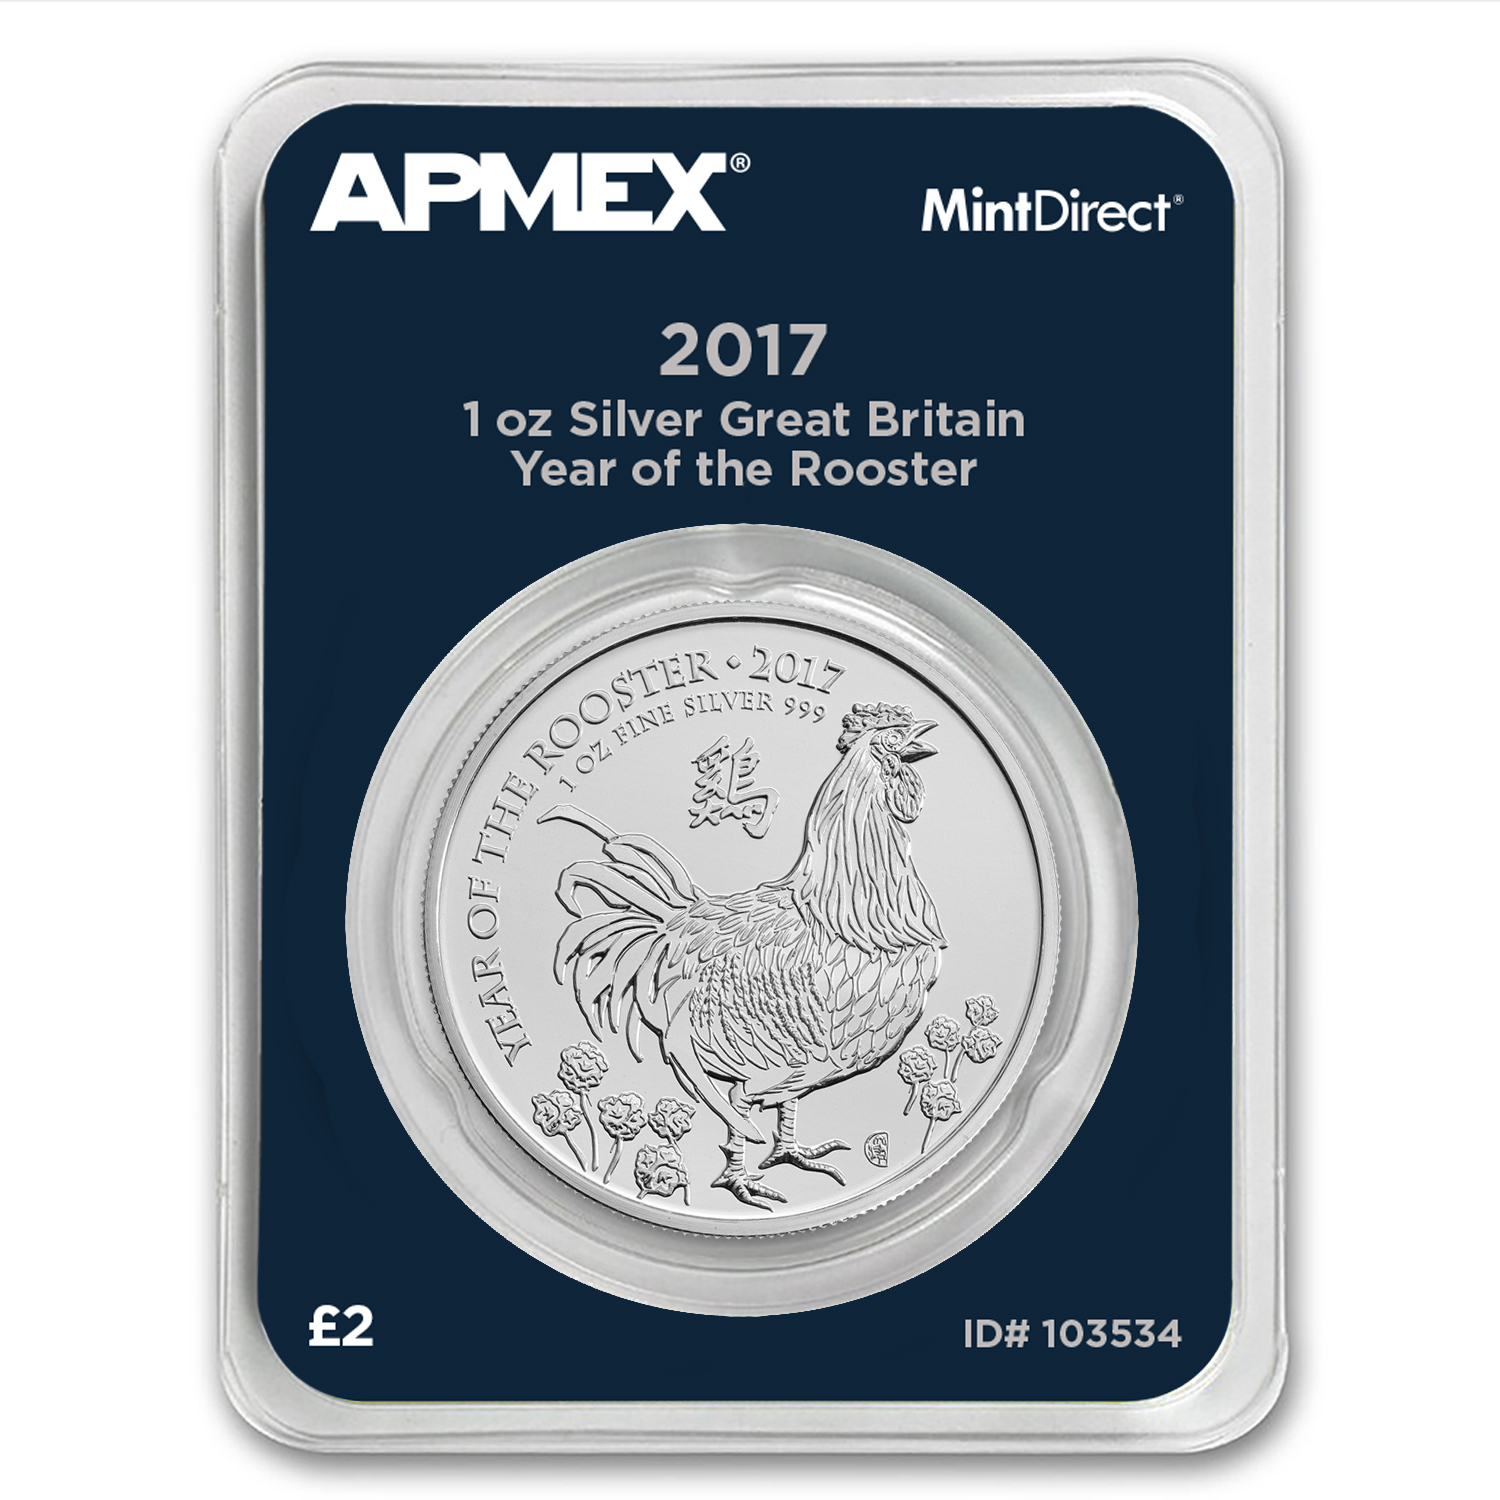 2017 GB 1 oz Silver Year of the Rooster (MintDirect® Single)